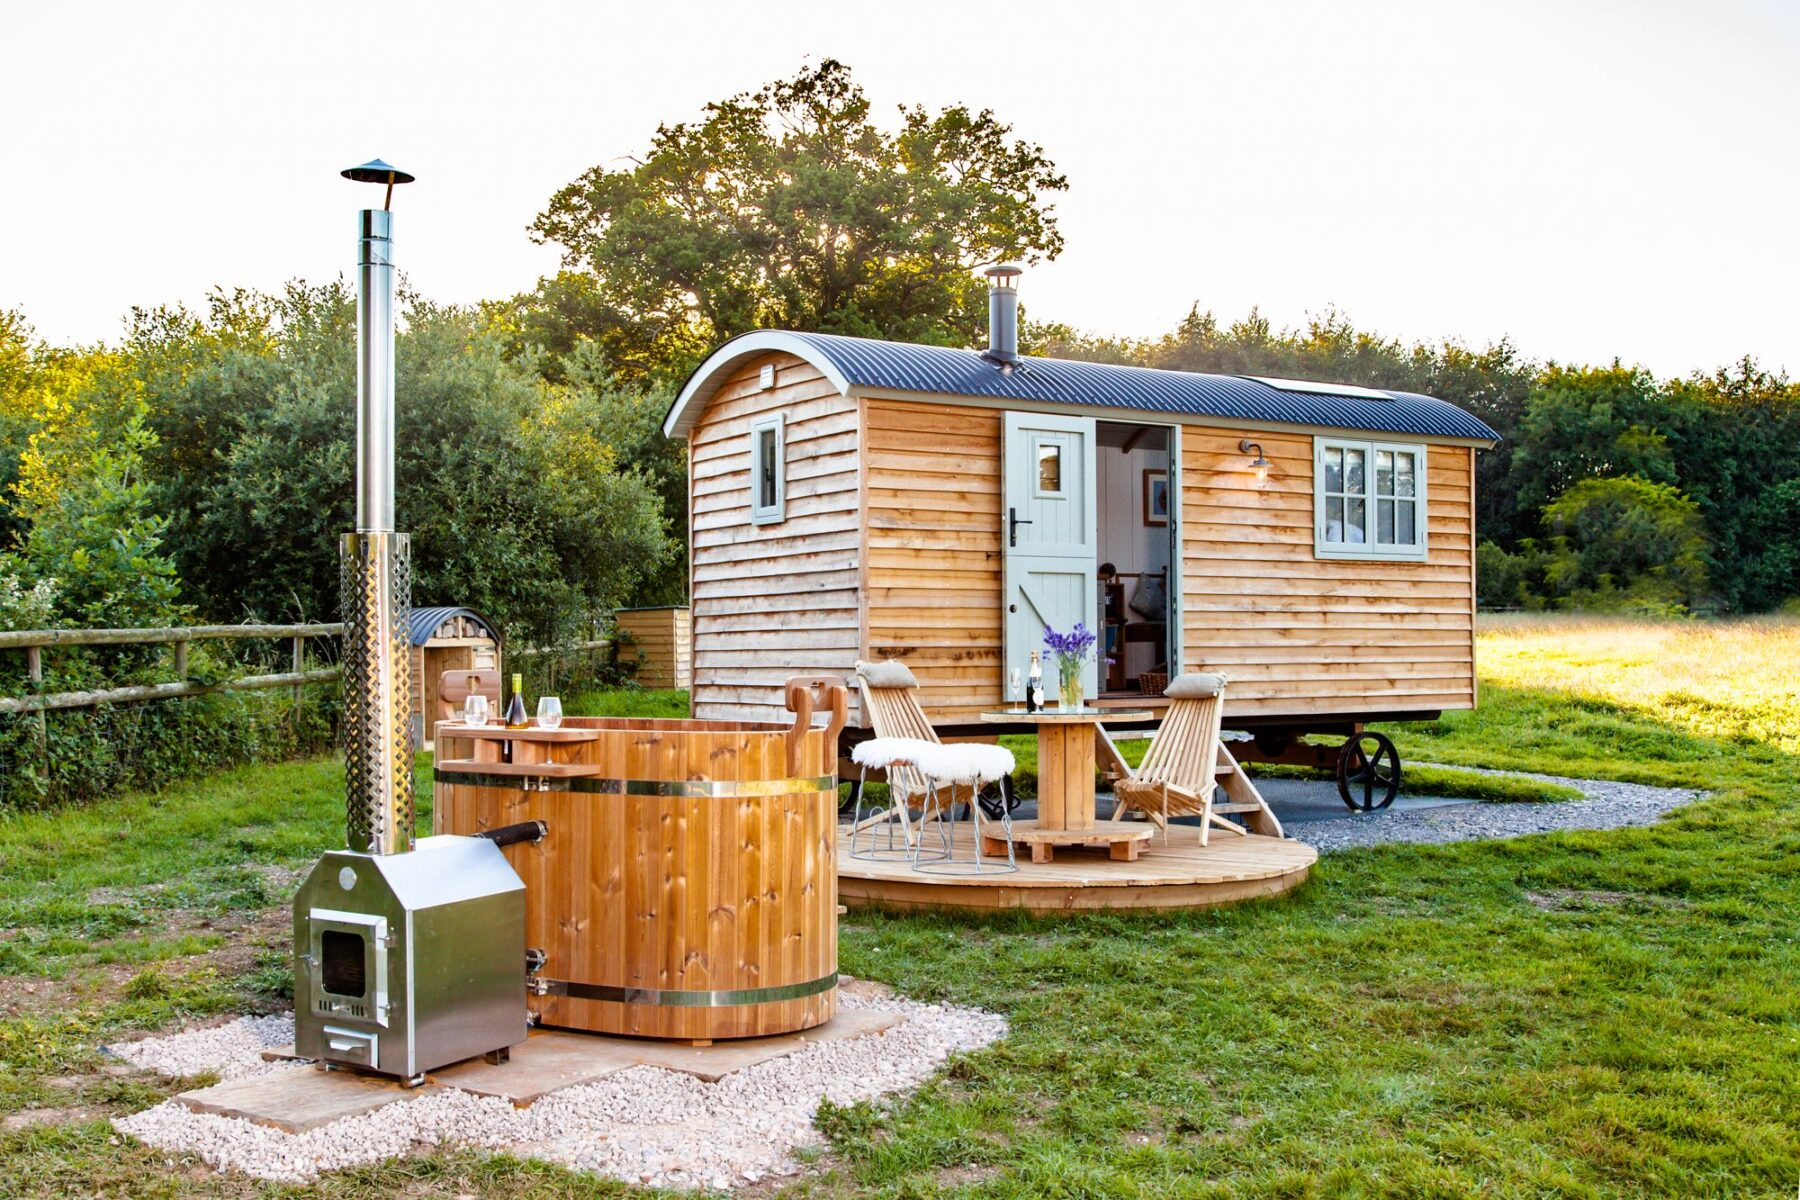 timber cladding on a shepherds hut and hot tub